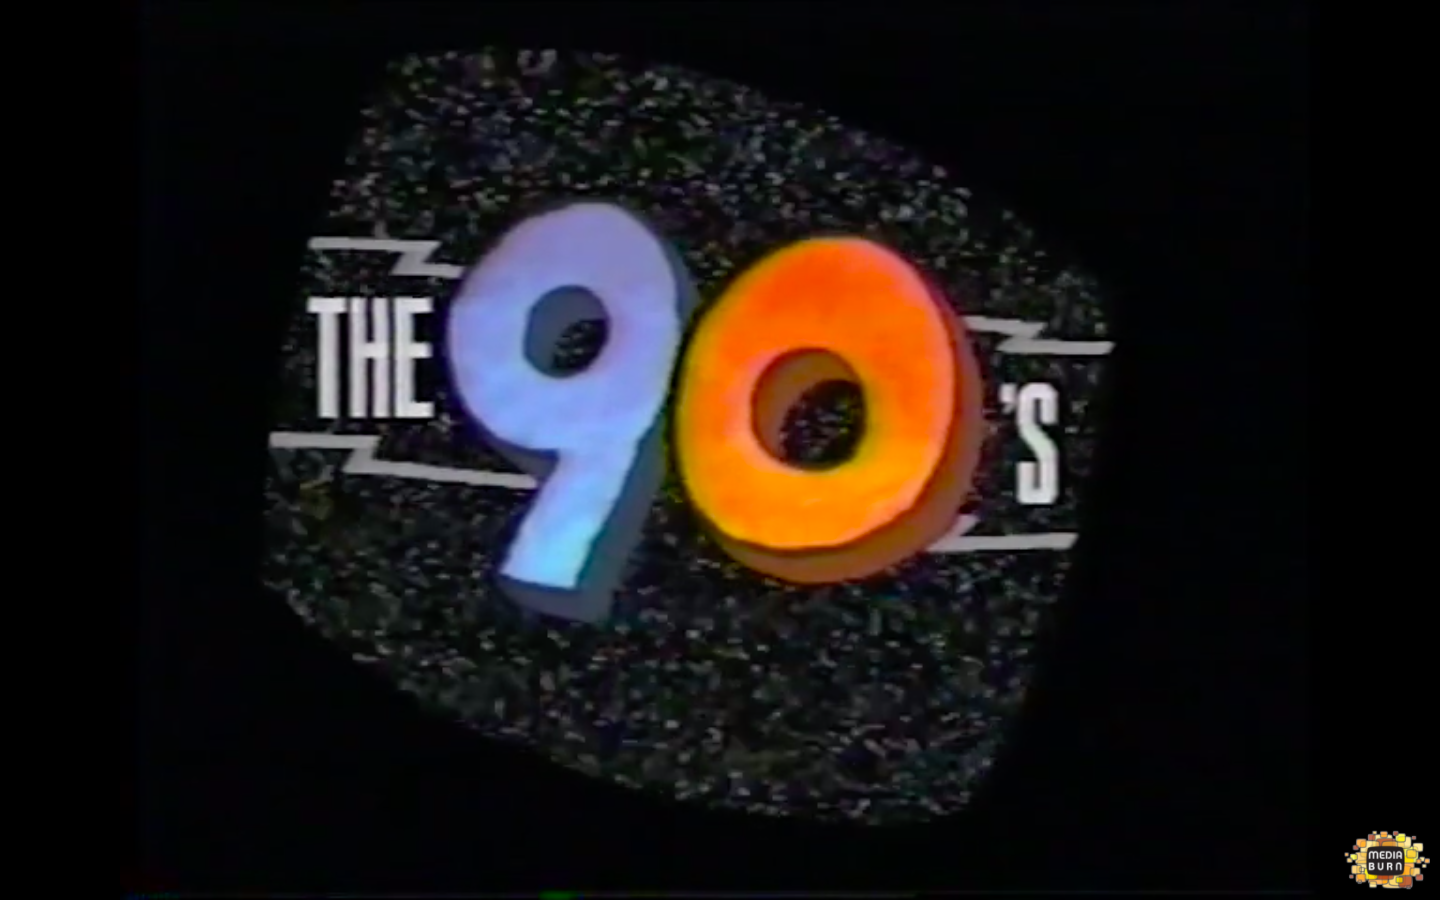 the_90s